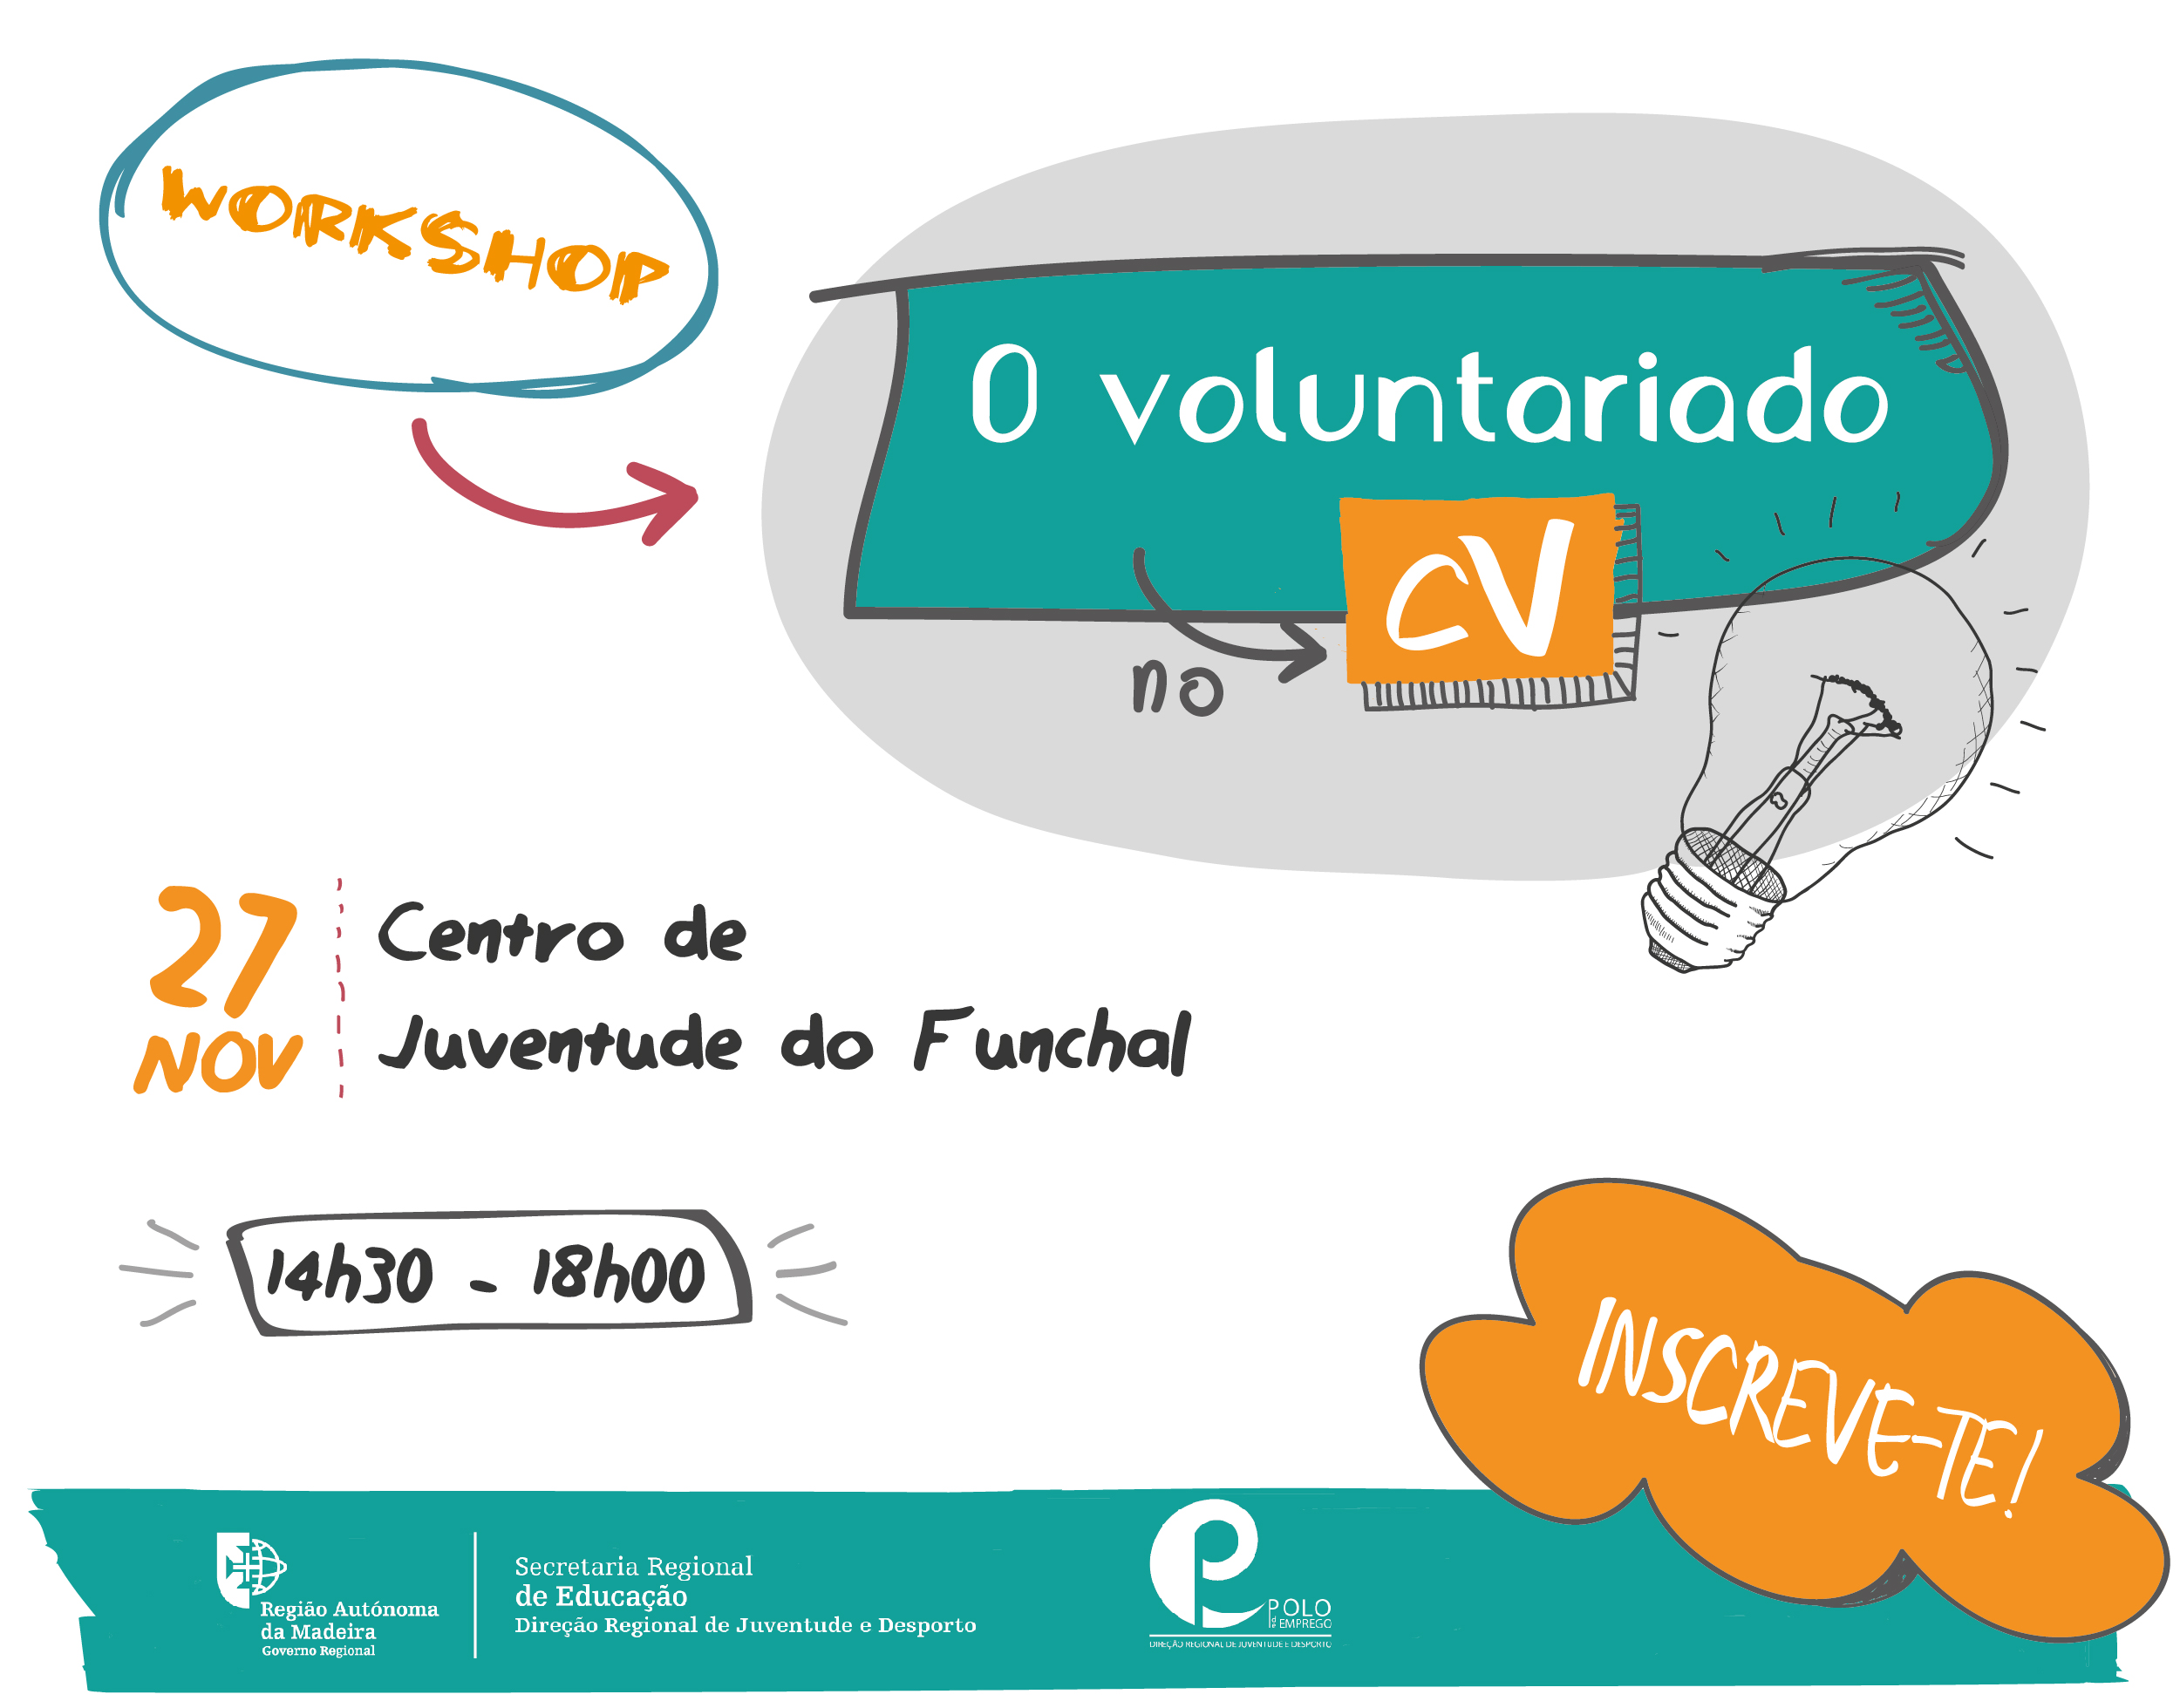 O Voluntariado no CV | workshop gratuito